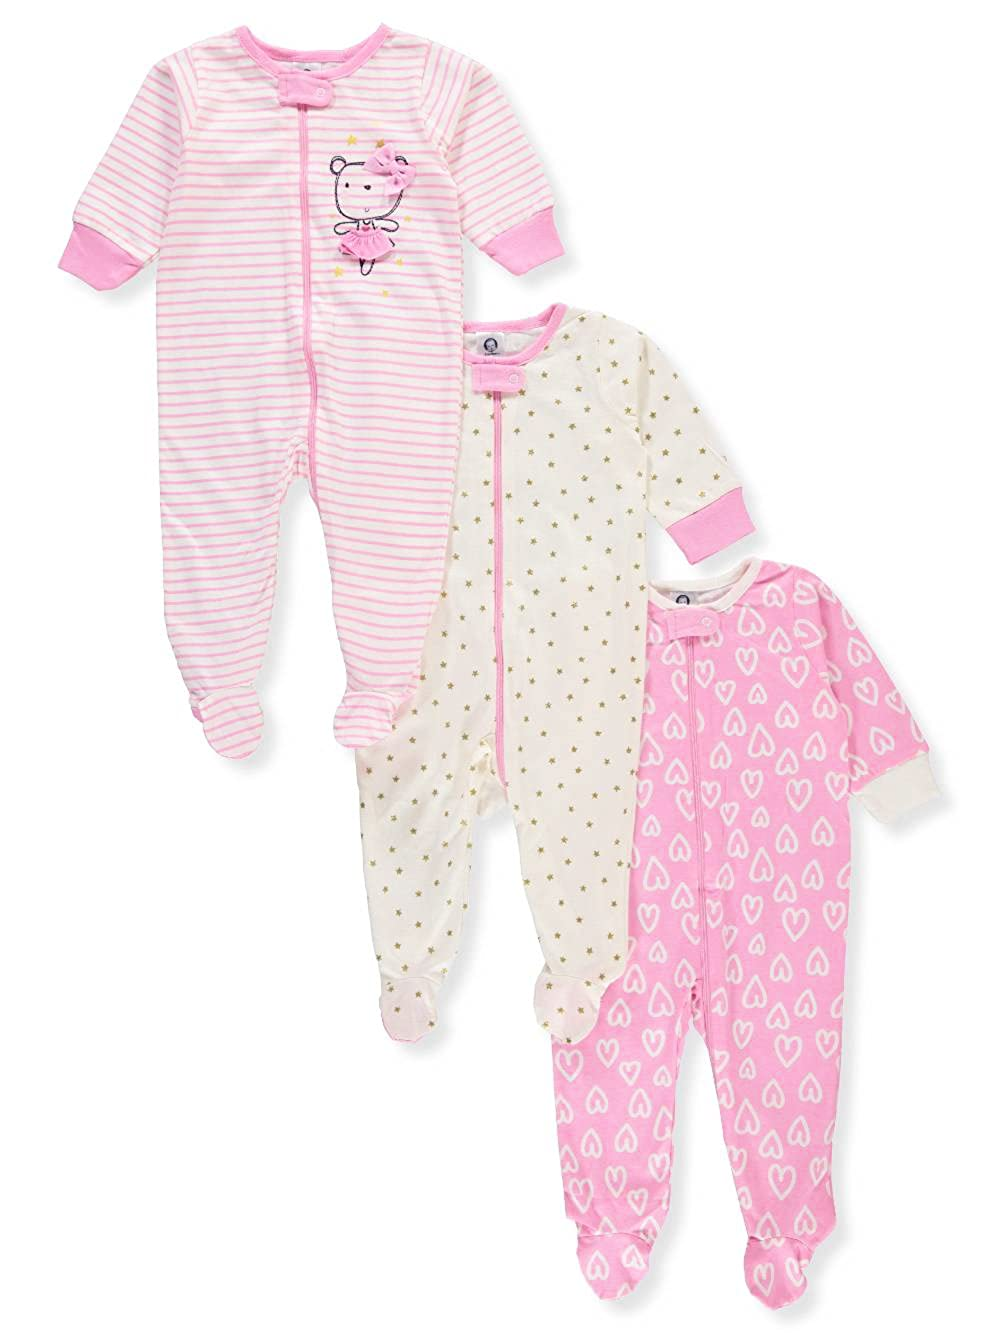 aa7513d50 Amazon.com  Gerber Onesies Baby Girl Sleep N Play Sleepers 3 Pack (6 ...